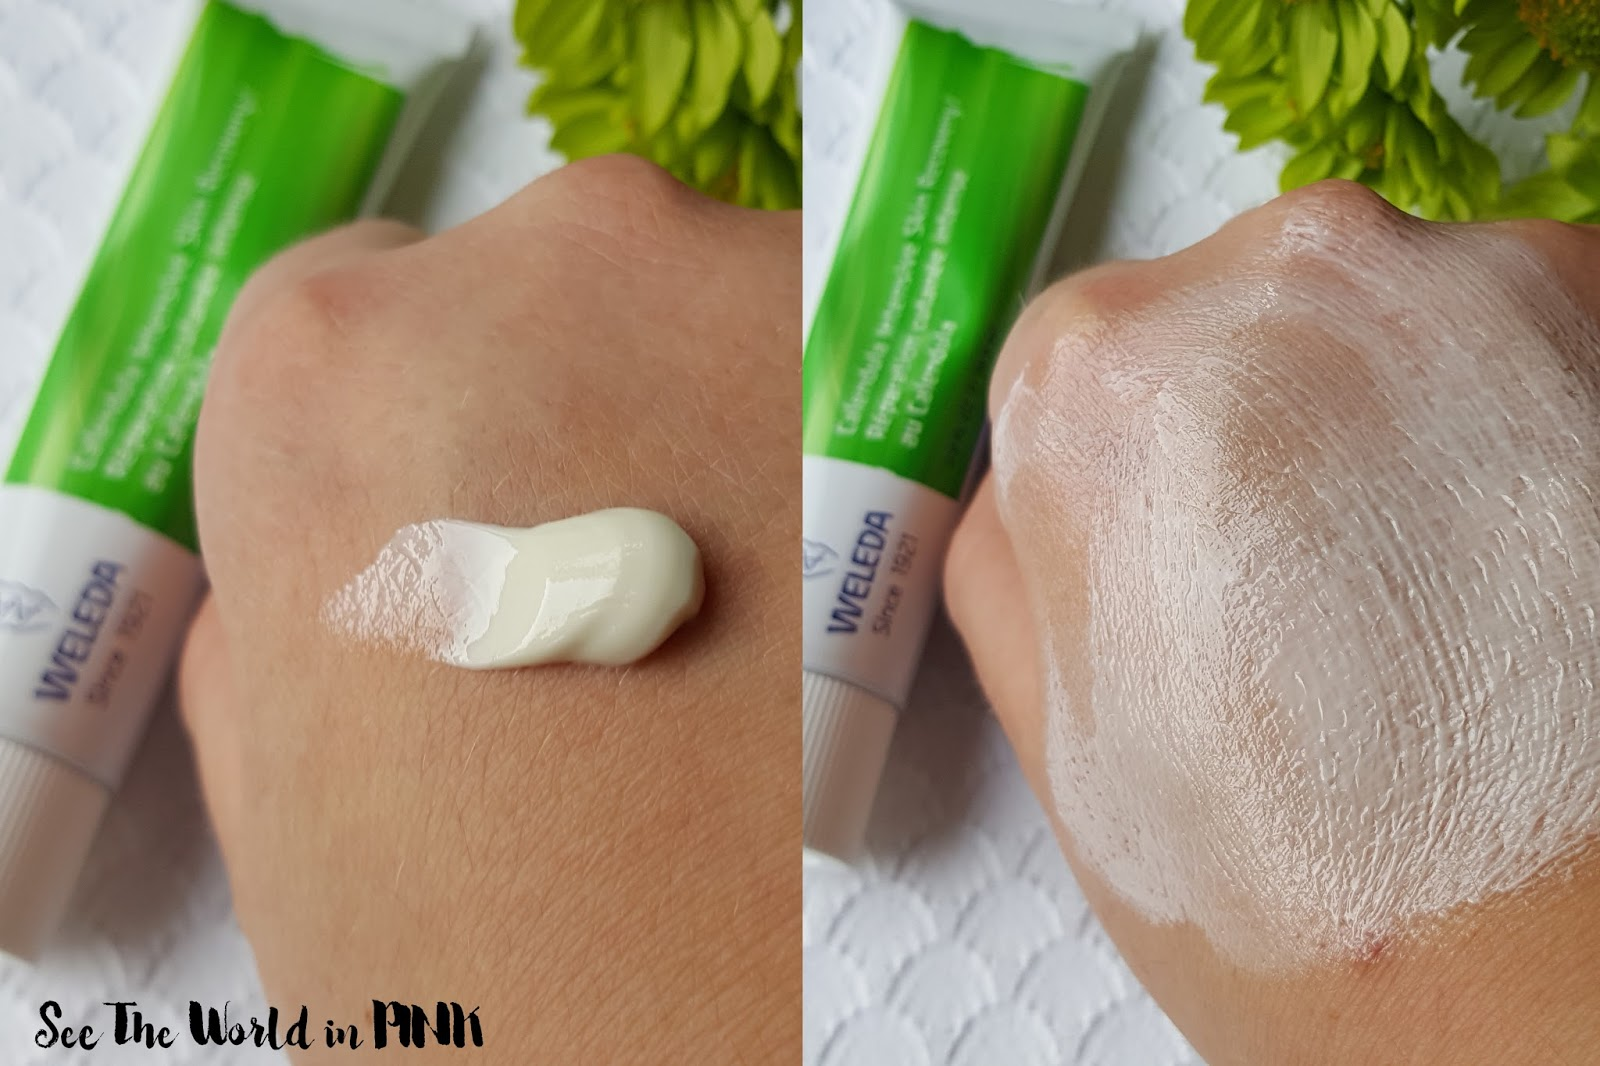 Skincare Sunday - Weleda Calendula Intensive Skin Recovery Cream Review